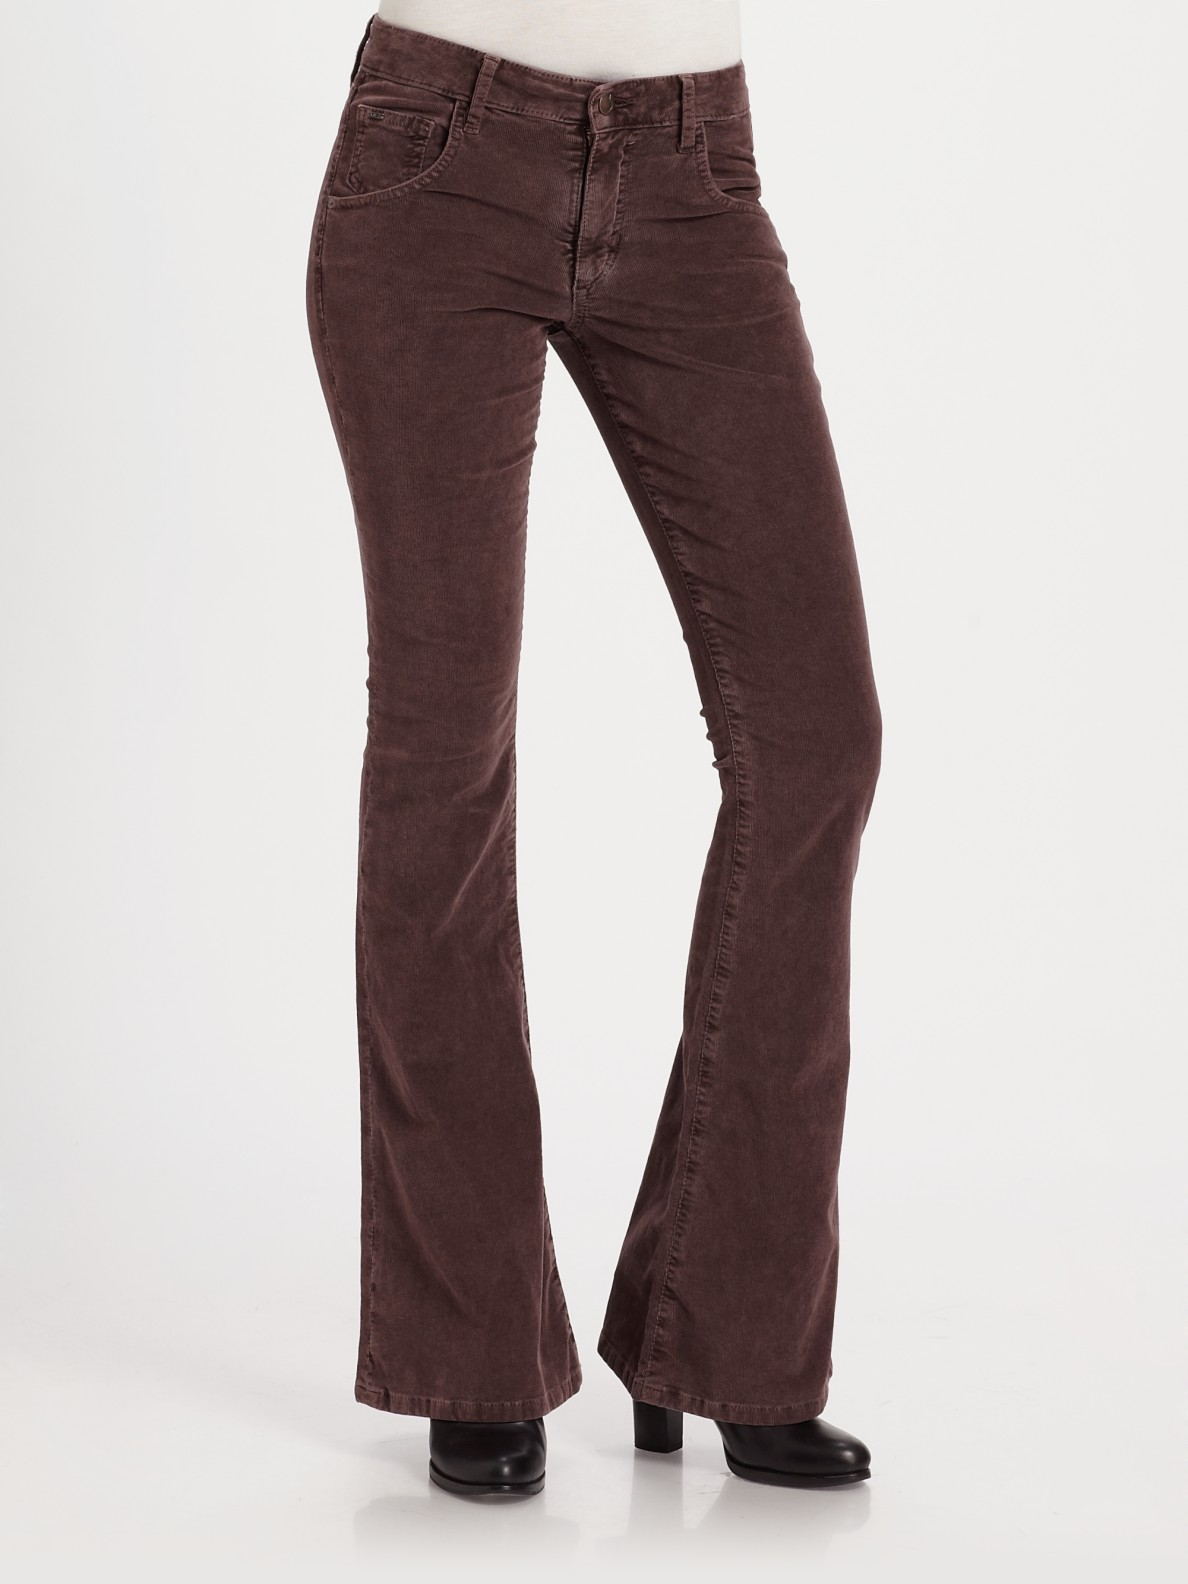 Shop the selection of corduroy pants women at Old Navy. Wear our women's corduroy pants and look your best. Mid-Rise Slim Flare Harper Full-Length Pants for Women. $ 32% off. $ Best Seller. Shop Best Corduroy Pants for Women at Old Navy Online. Reinvent your looks this season with the hip texture of Old Navy corduroy pants for.